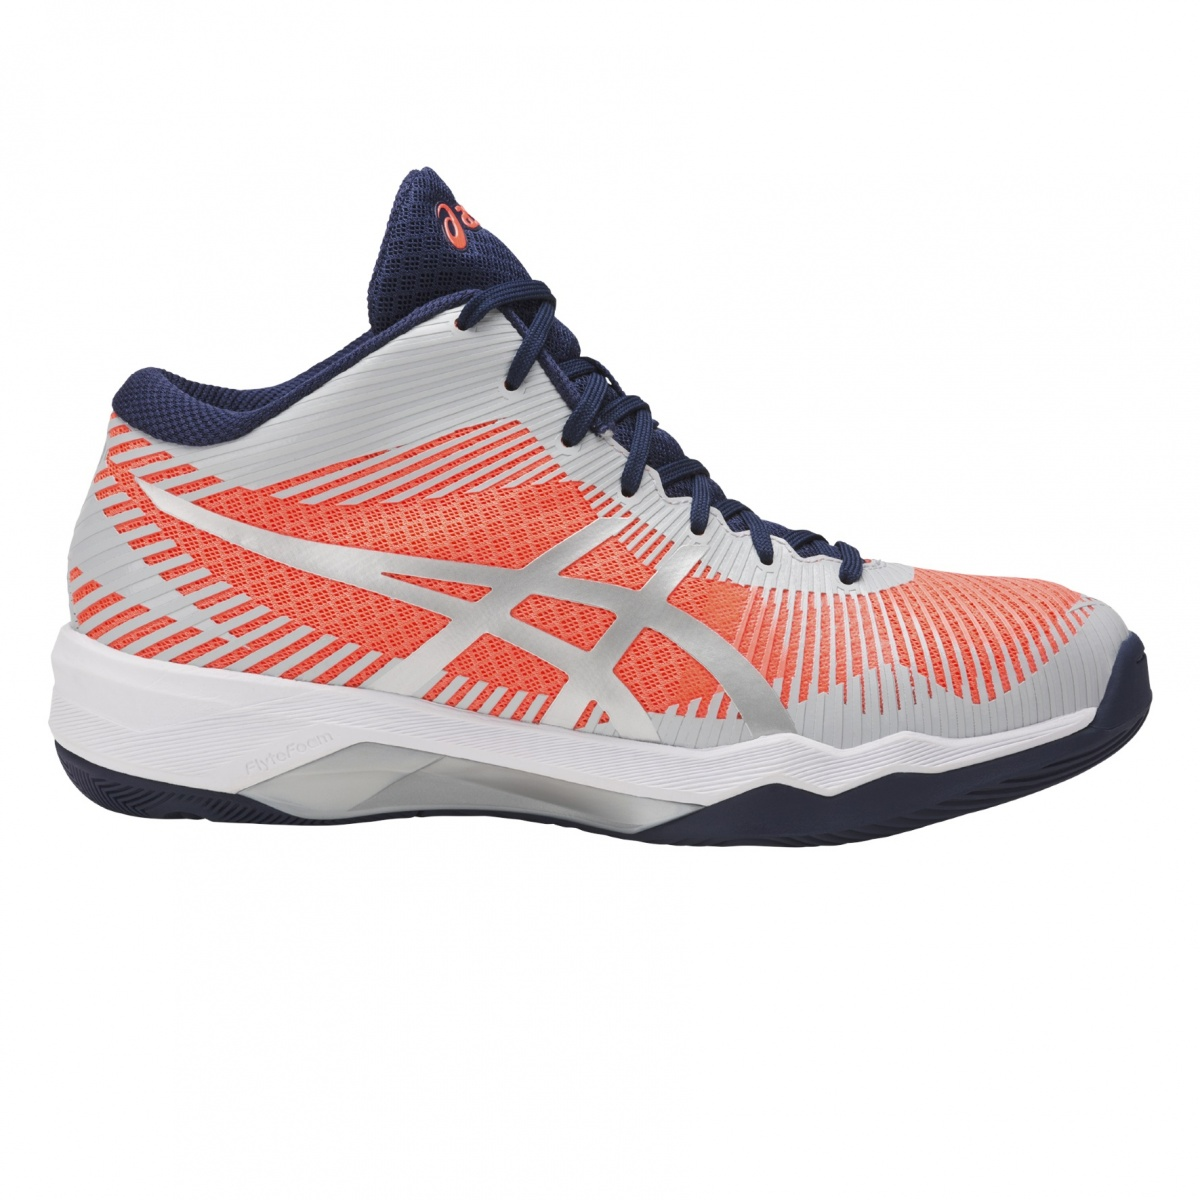 Asics Gel Volley Elite FF MT 2017 grau/pink Volleyballschuhe Damen ...